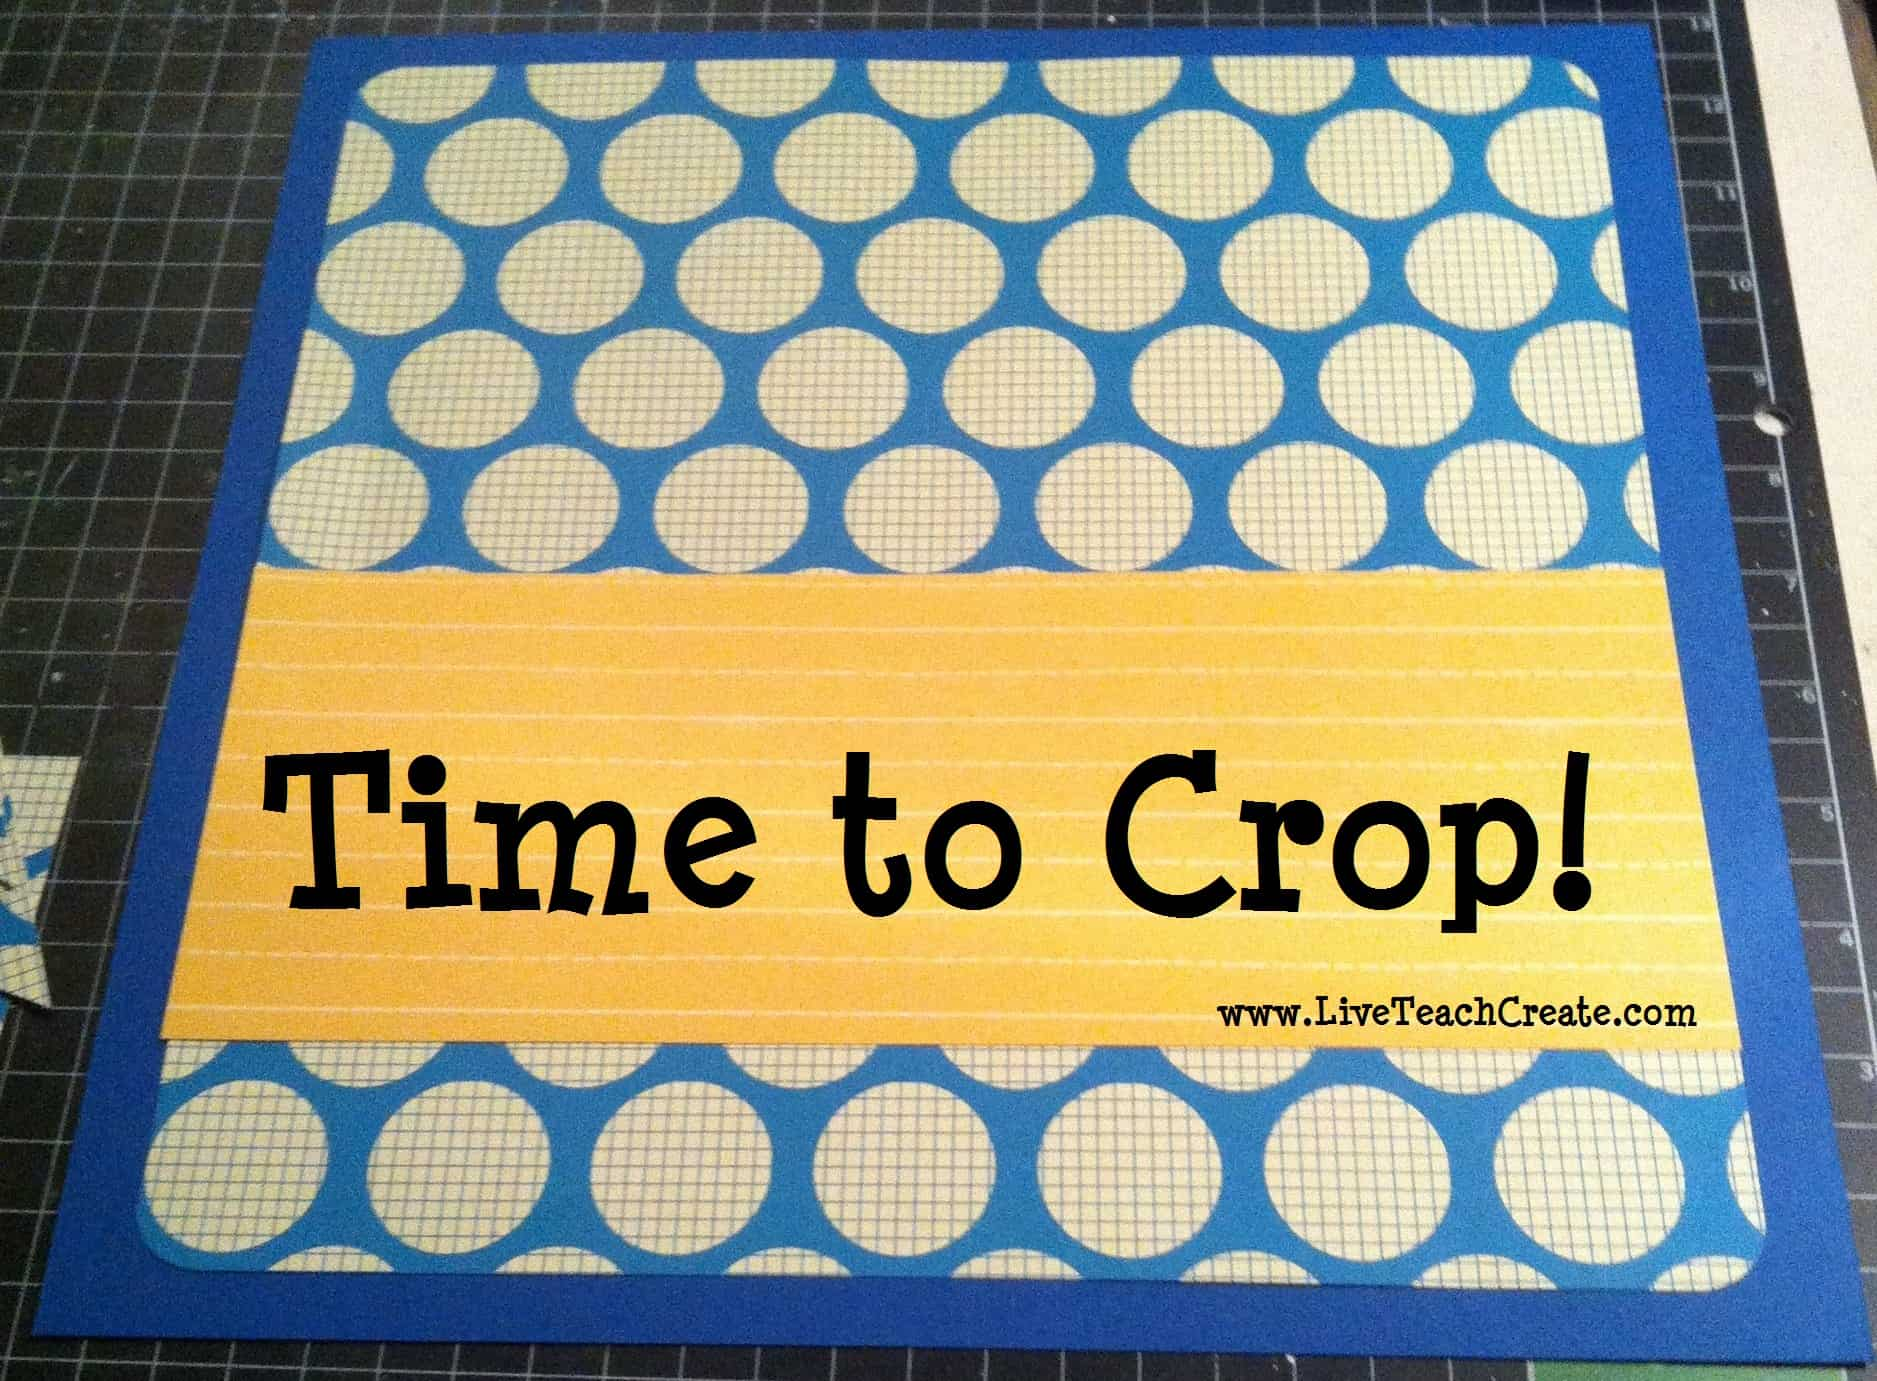 Ready to Crop?